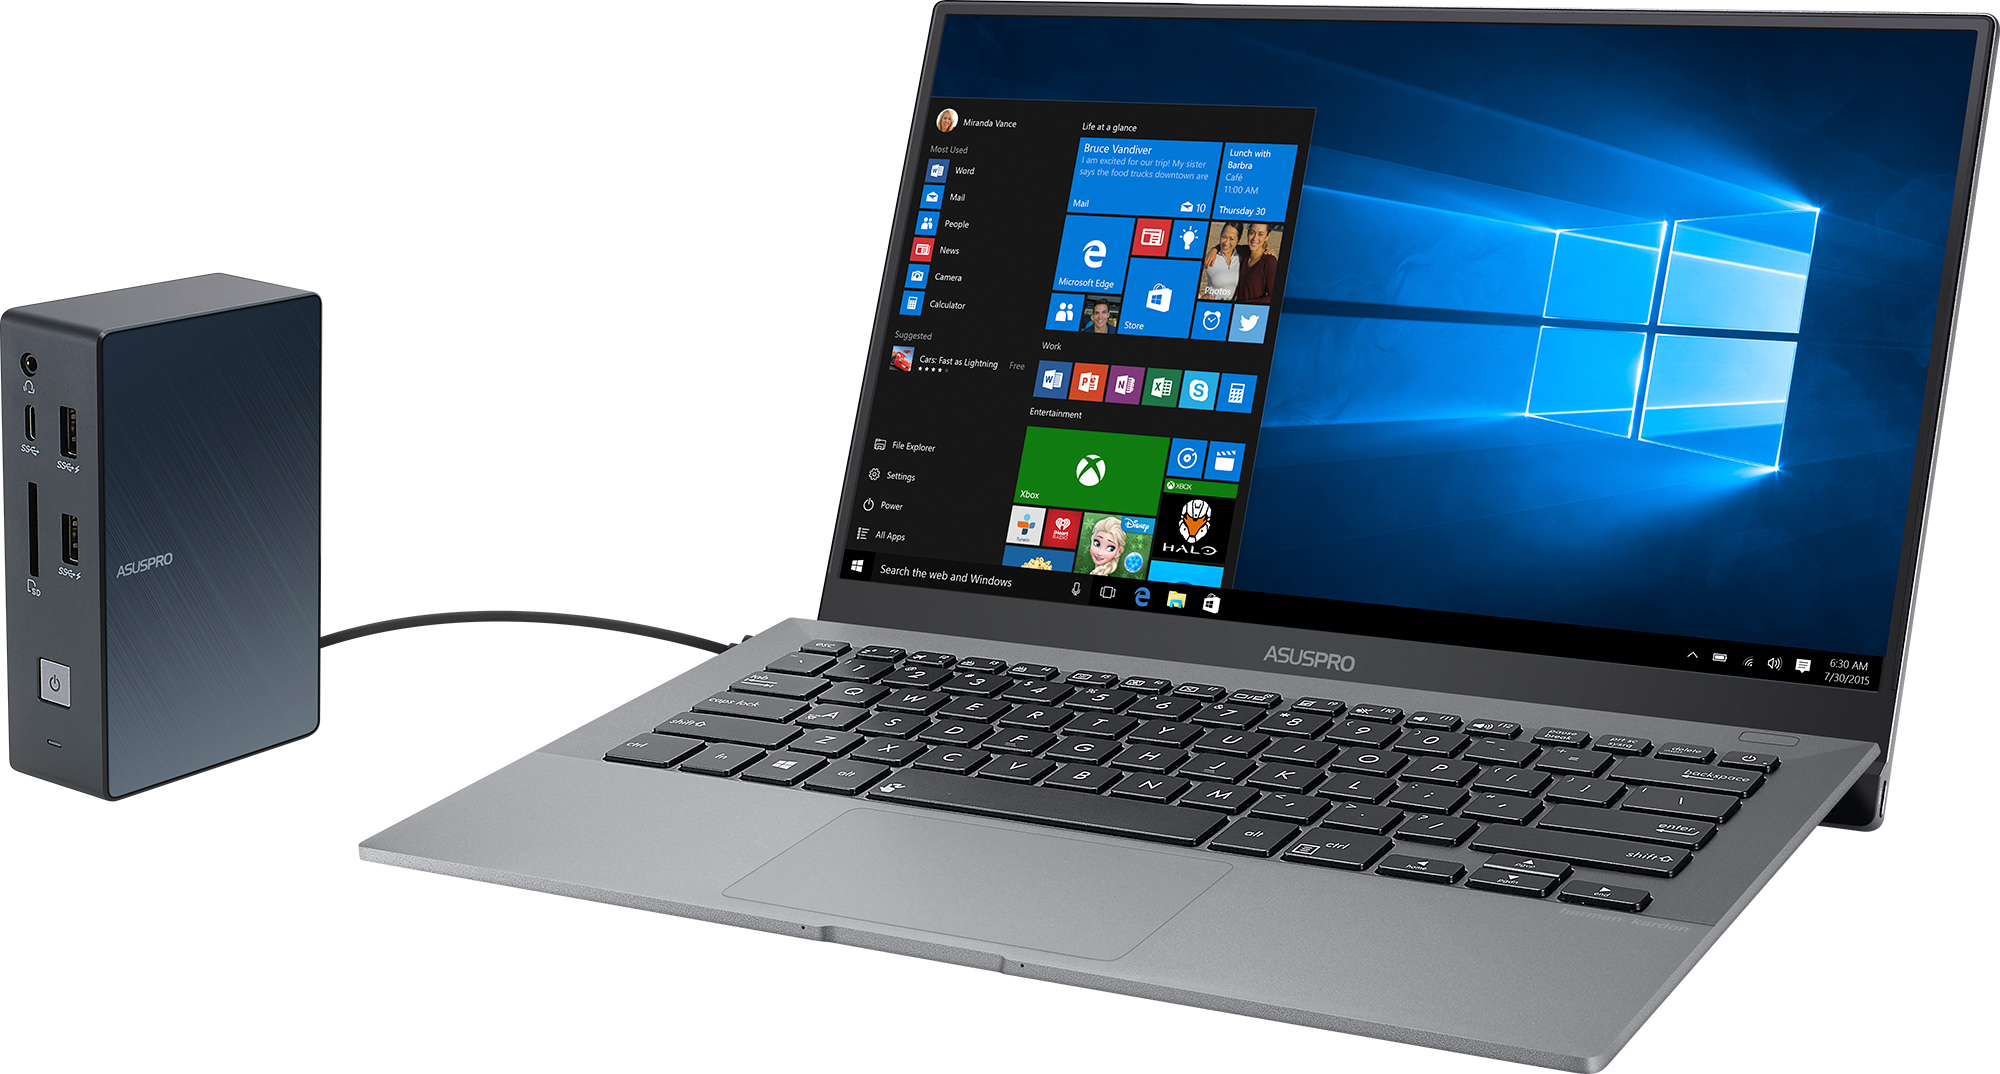 asus pro b9440 durable ultra thin business laptop with 10 hour battery for 999. Black Bedroom Furniture Sets. Home Design Ideas